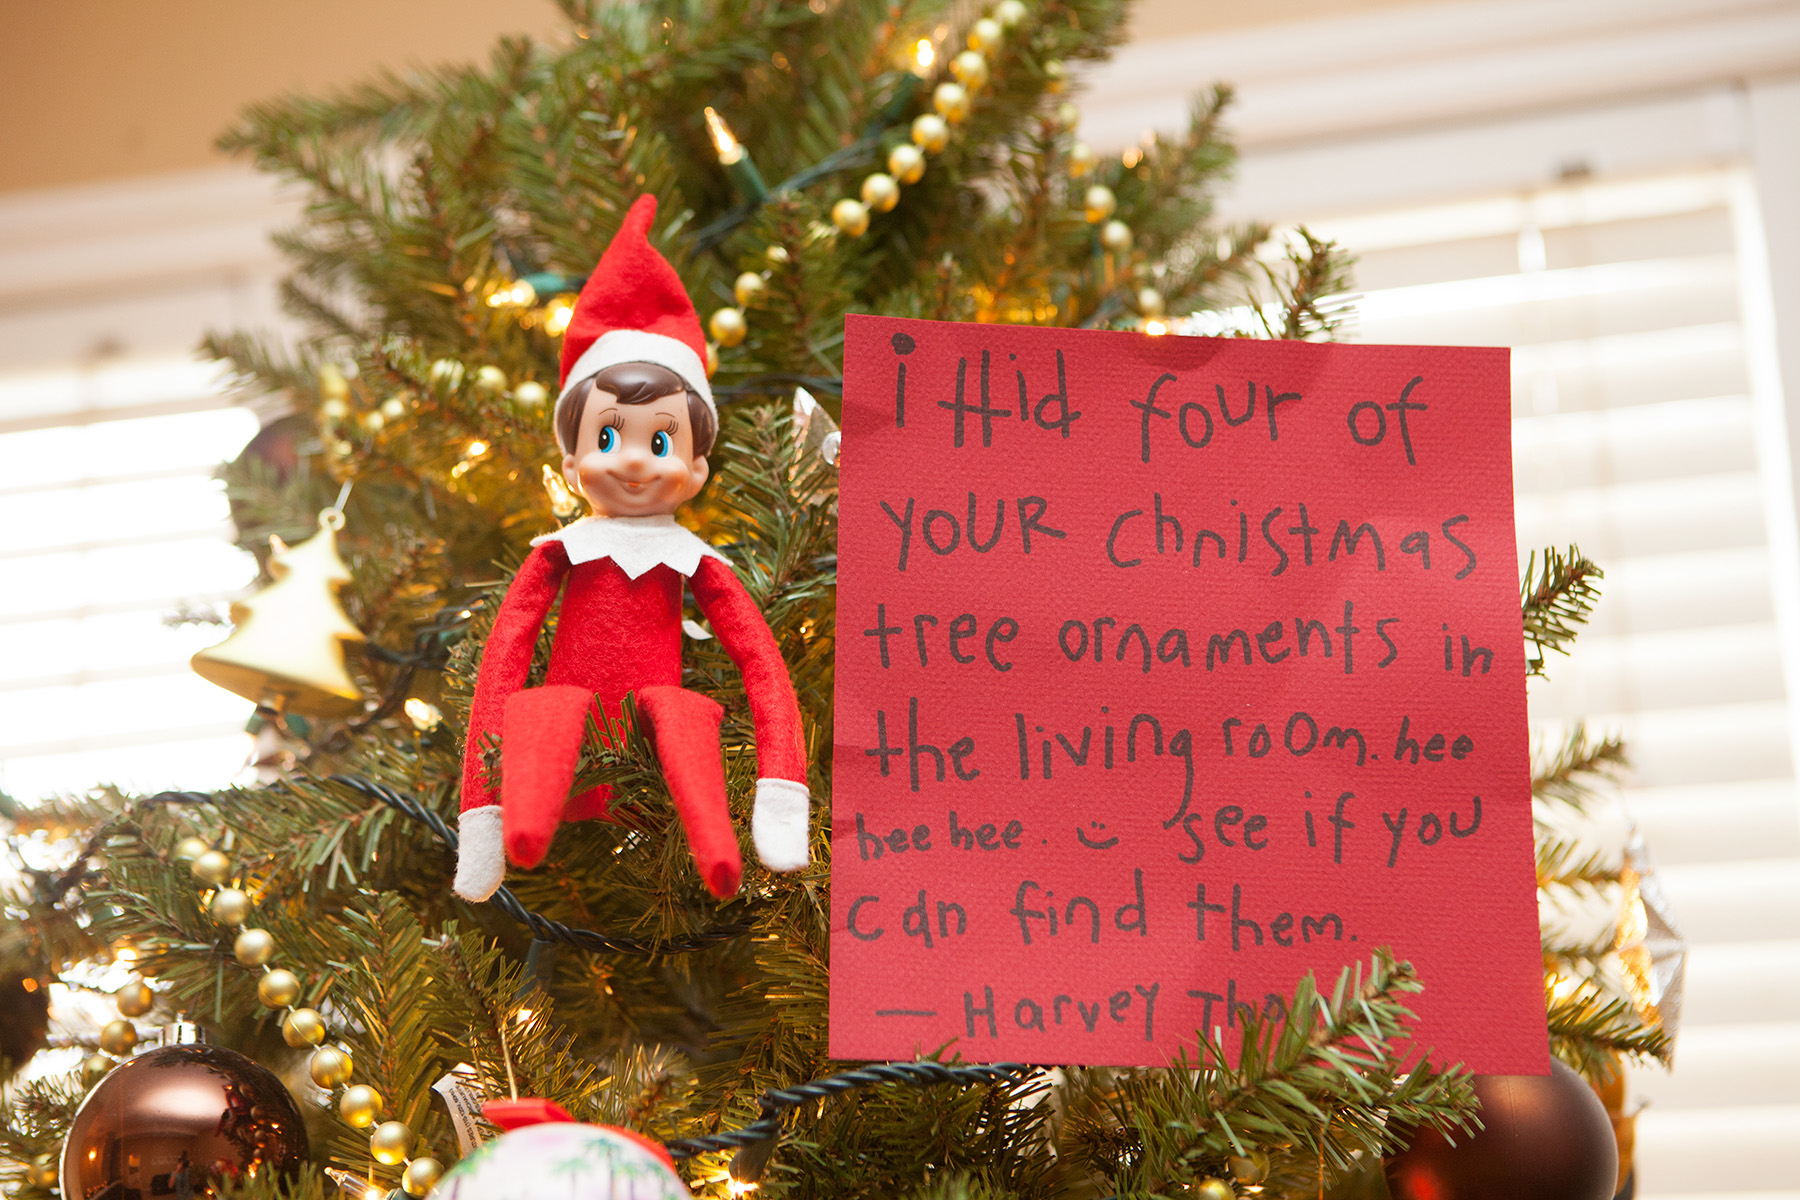 This Expert Claims Elf On The Shelf Is Actually Pretty Bad